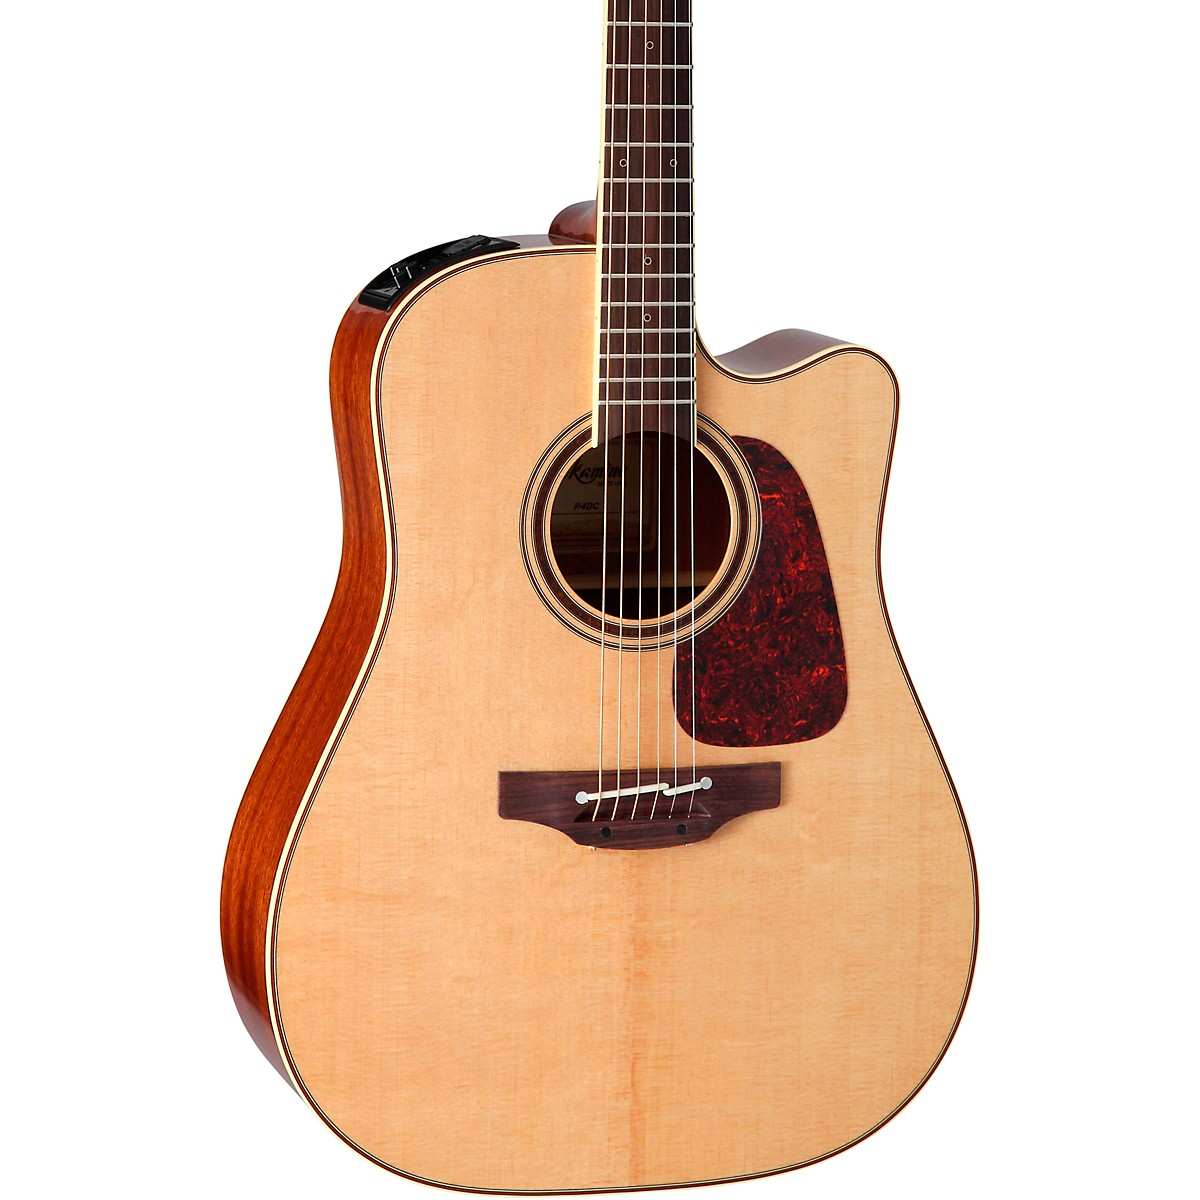 Takamine Pro Series 4 Dreadnought Cutaway Acoustic-Electric Guitar